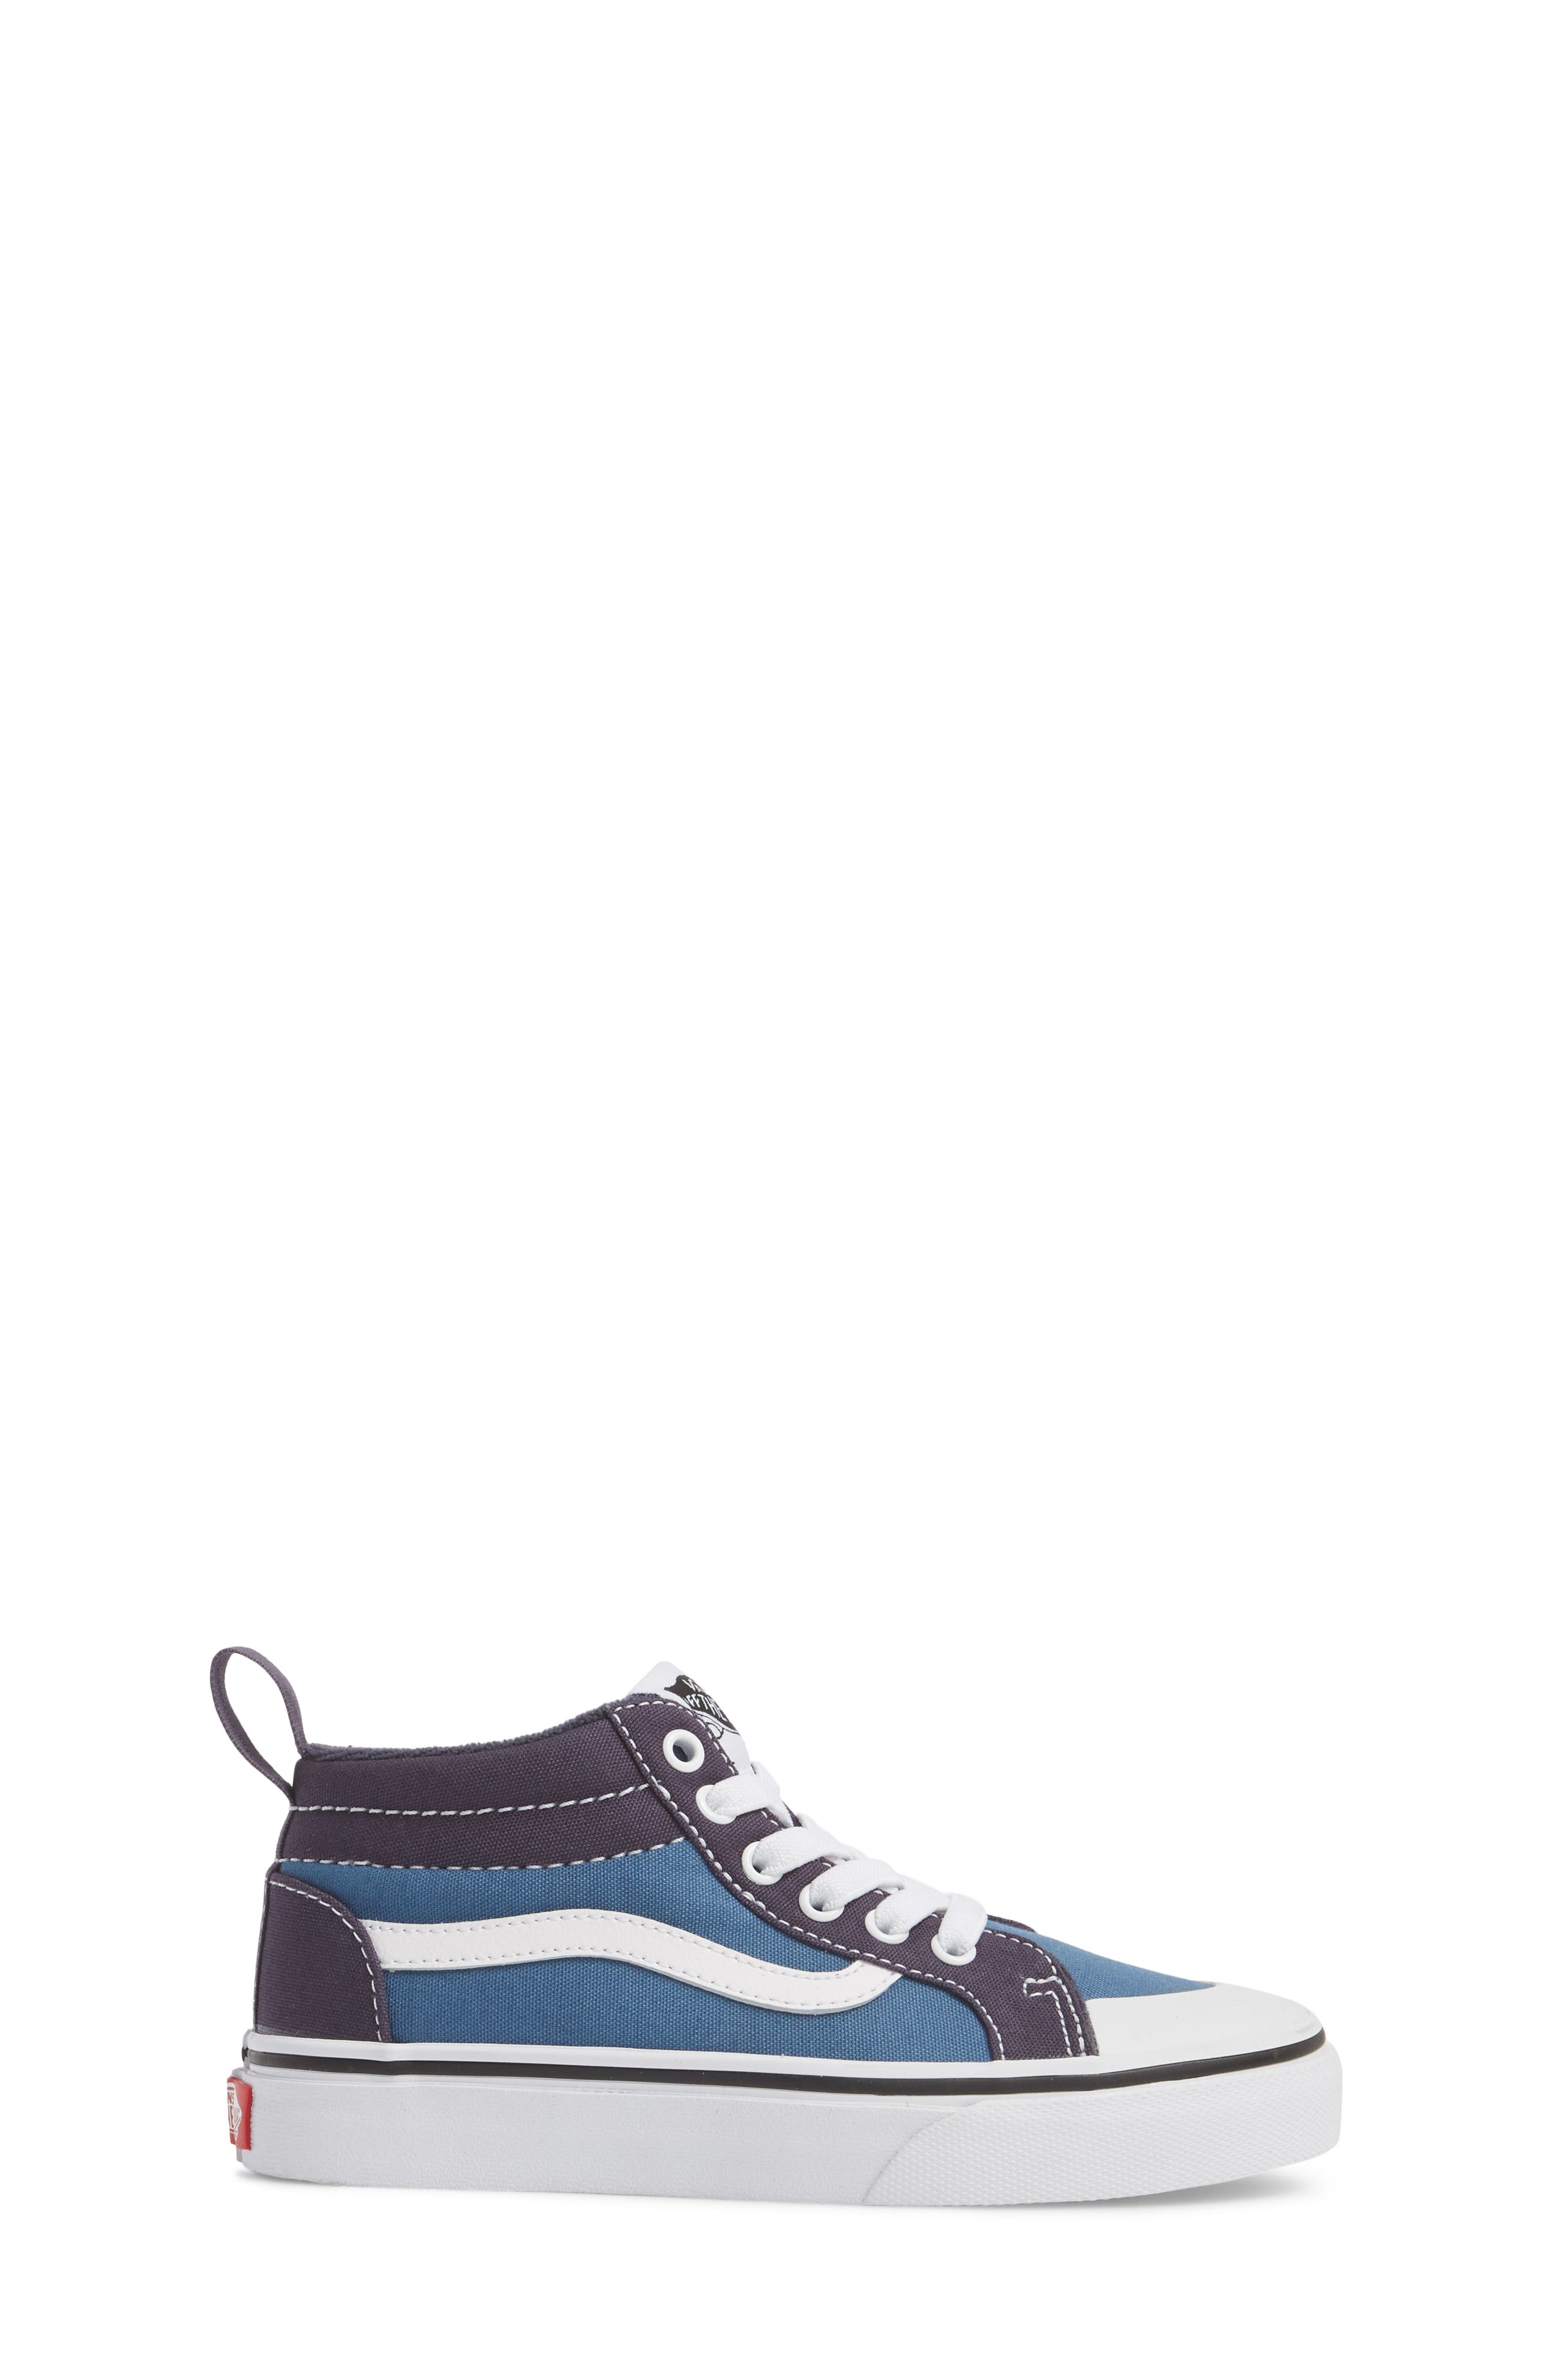 Racer Mid Elastic Lace Sneaker,                             Alternate thumbnail 3, color,                             Navy/ Navy